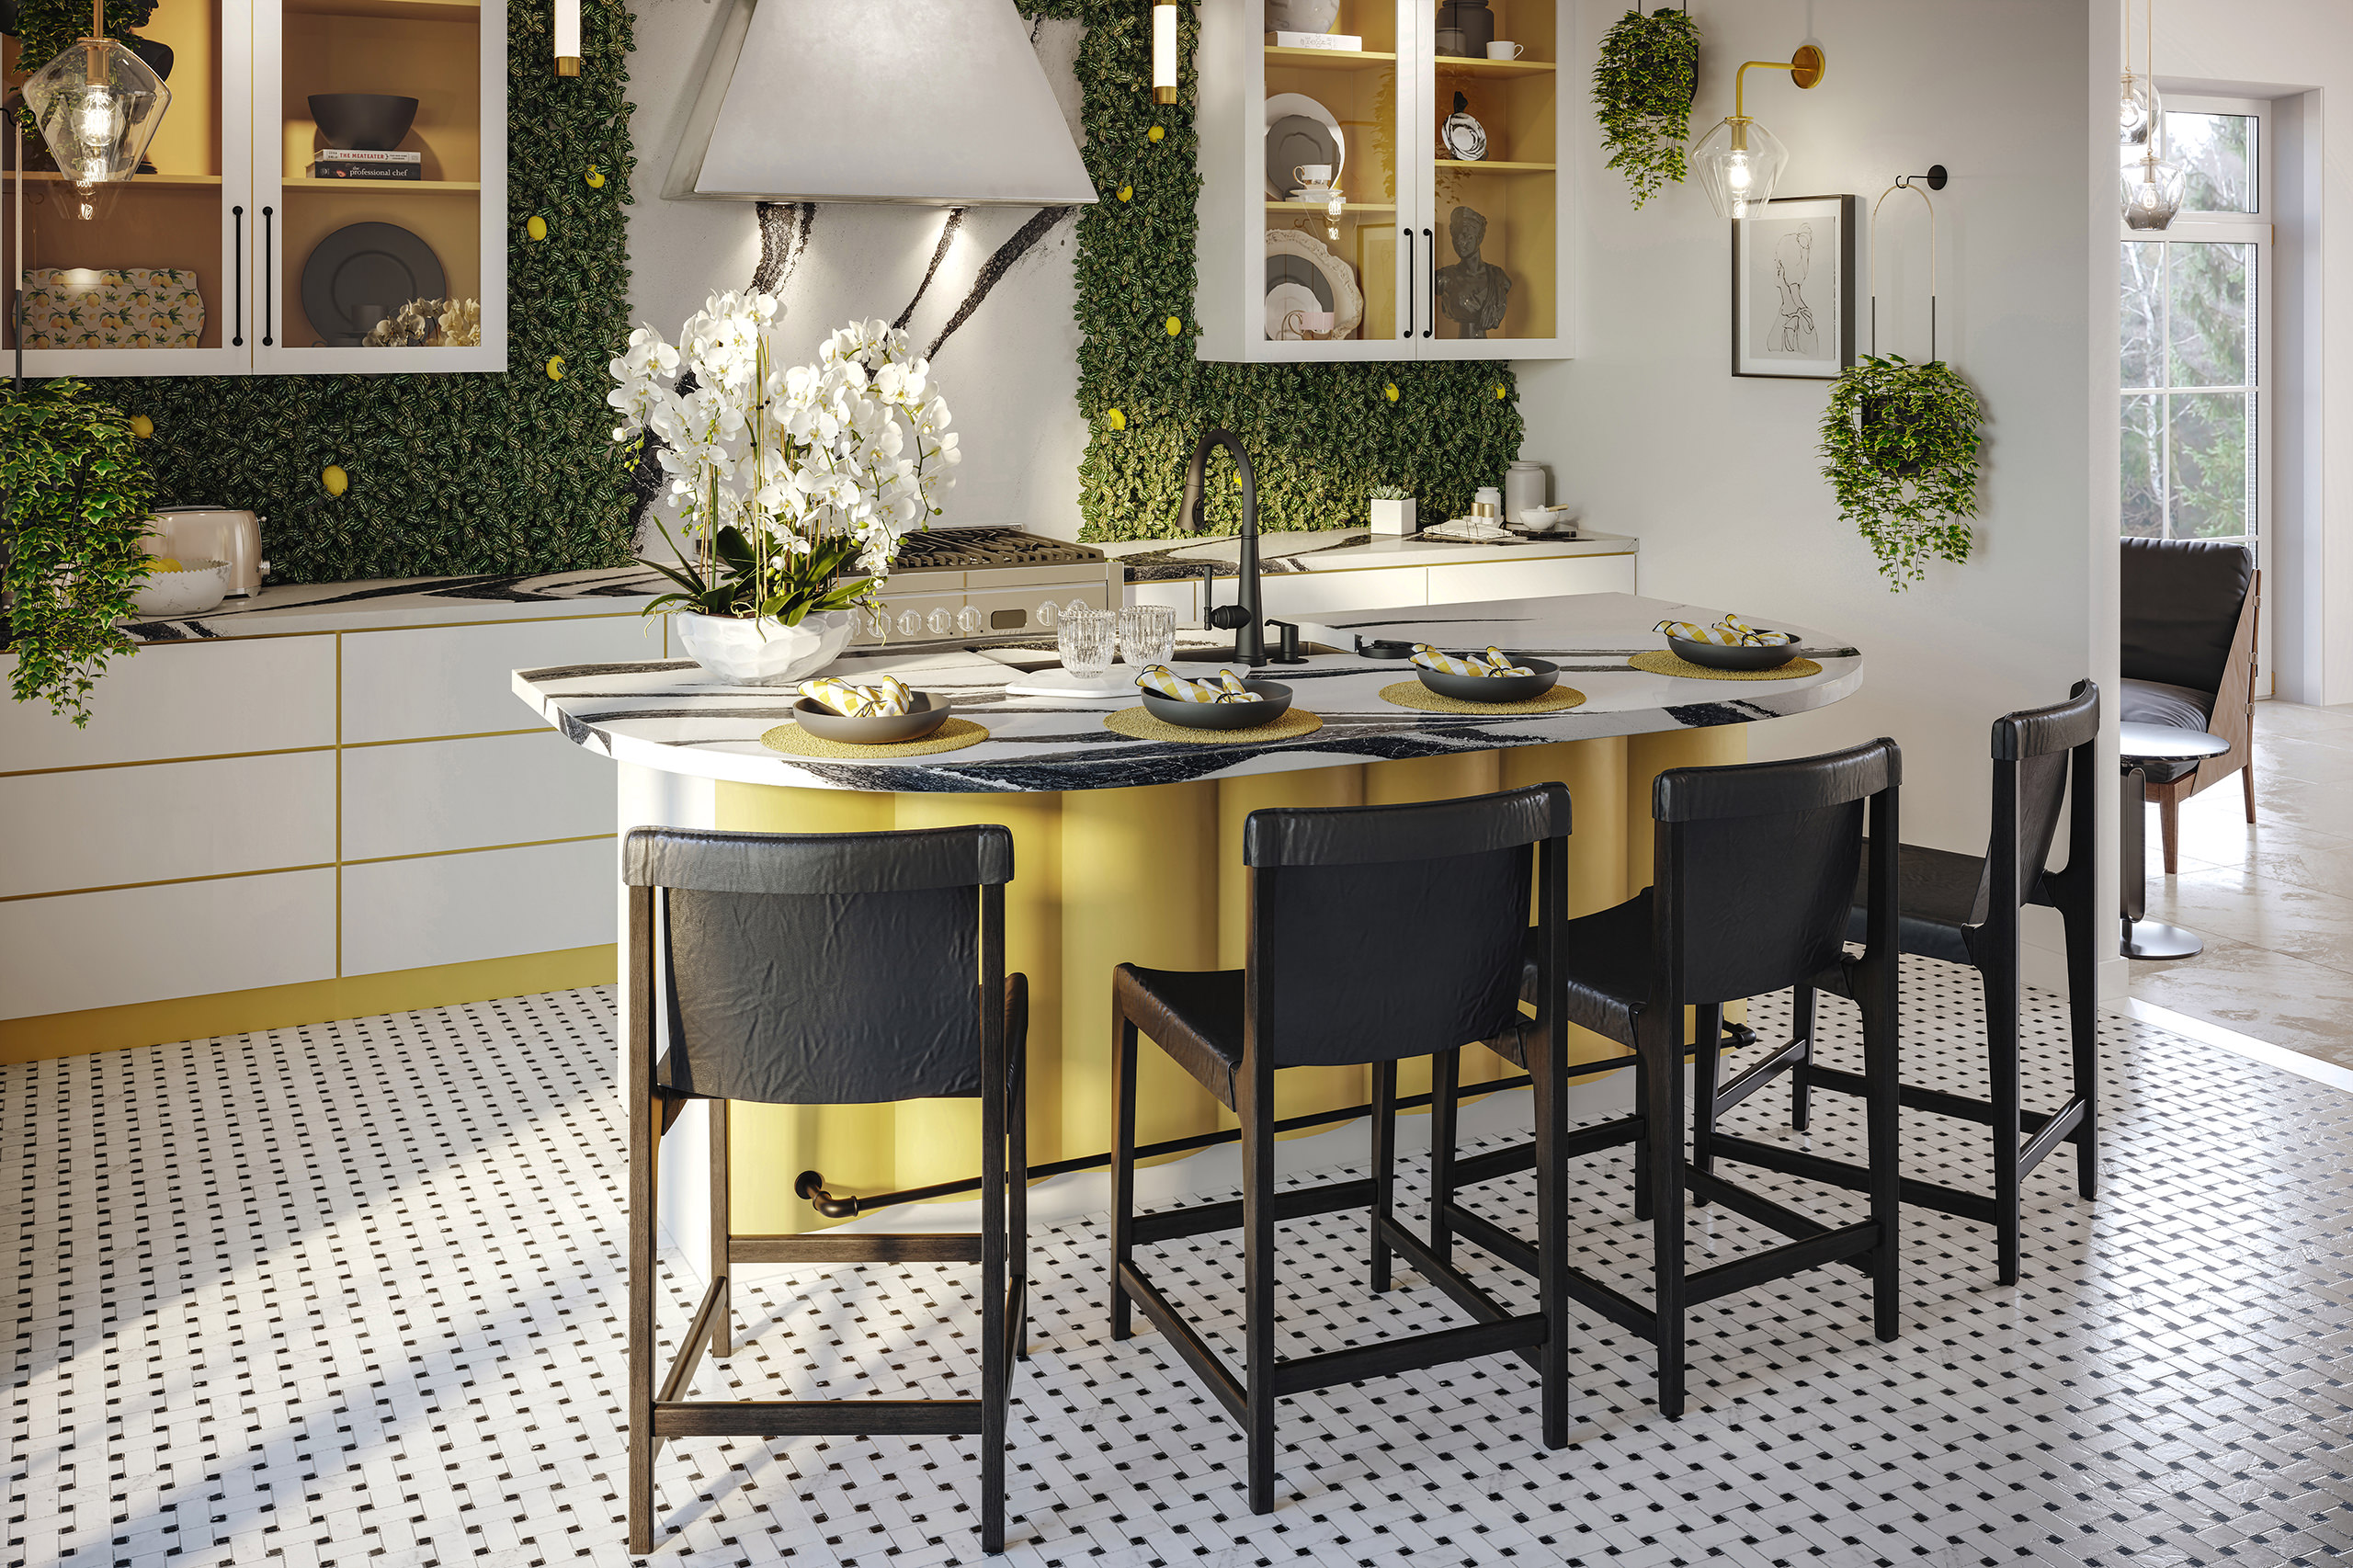 Interior visualization of a European-inspired kitchen consisting of a curved island with barstools and Delta faucets arrangement, stove with a hood, glass cabinets with black&white decor and a feature green wall with lemons